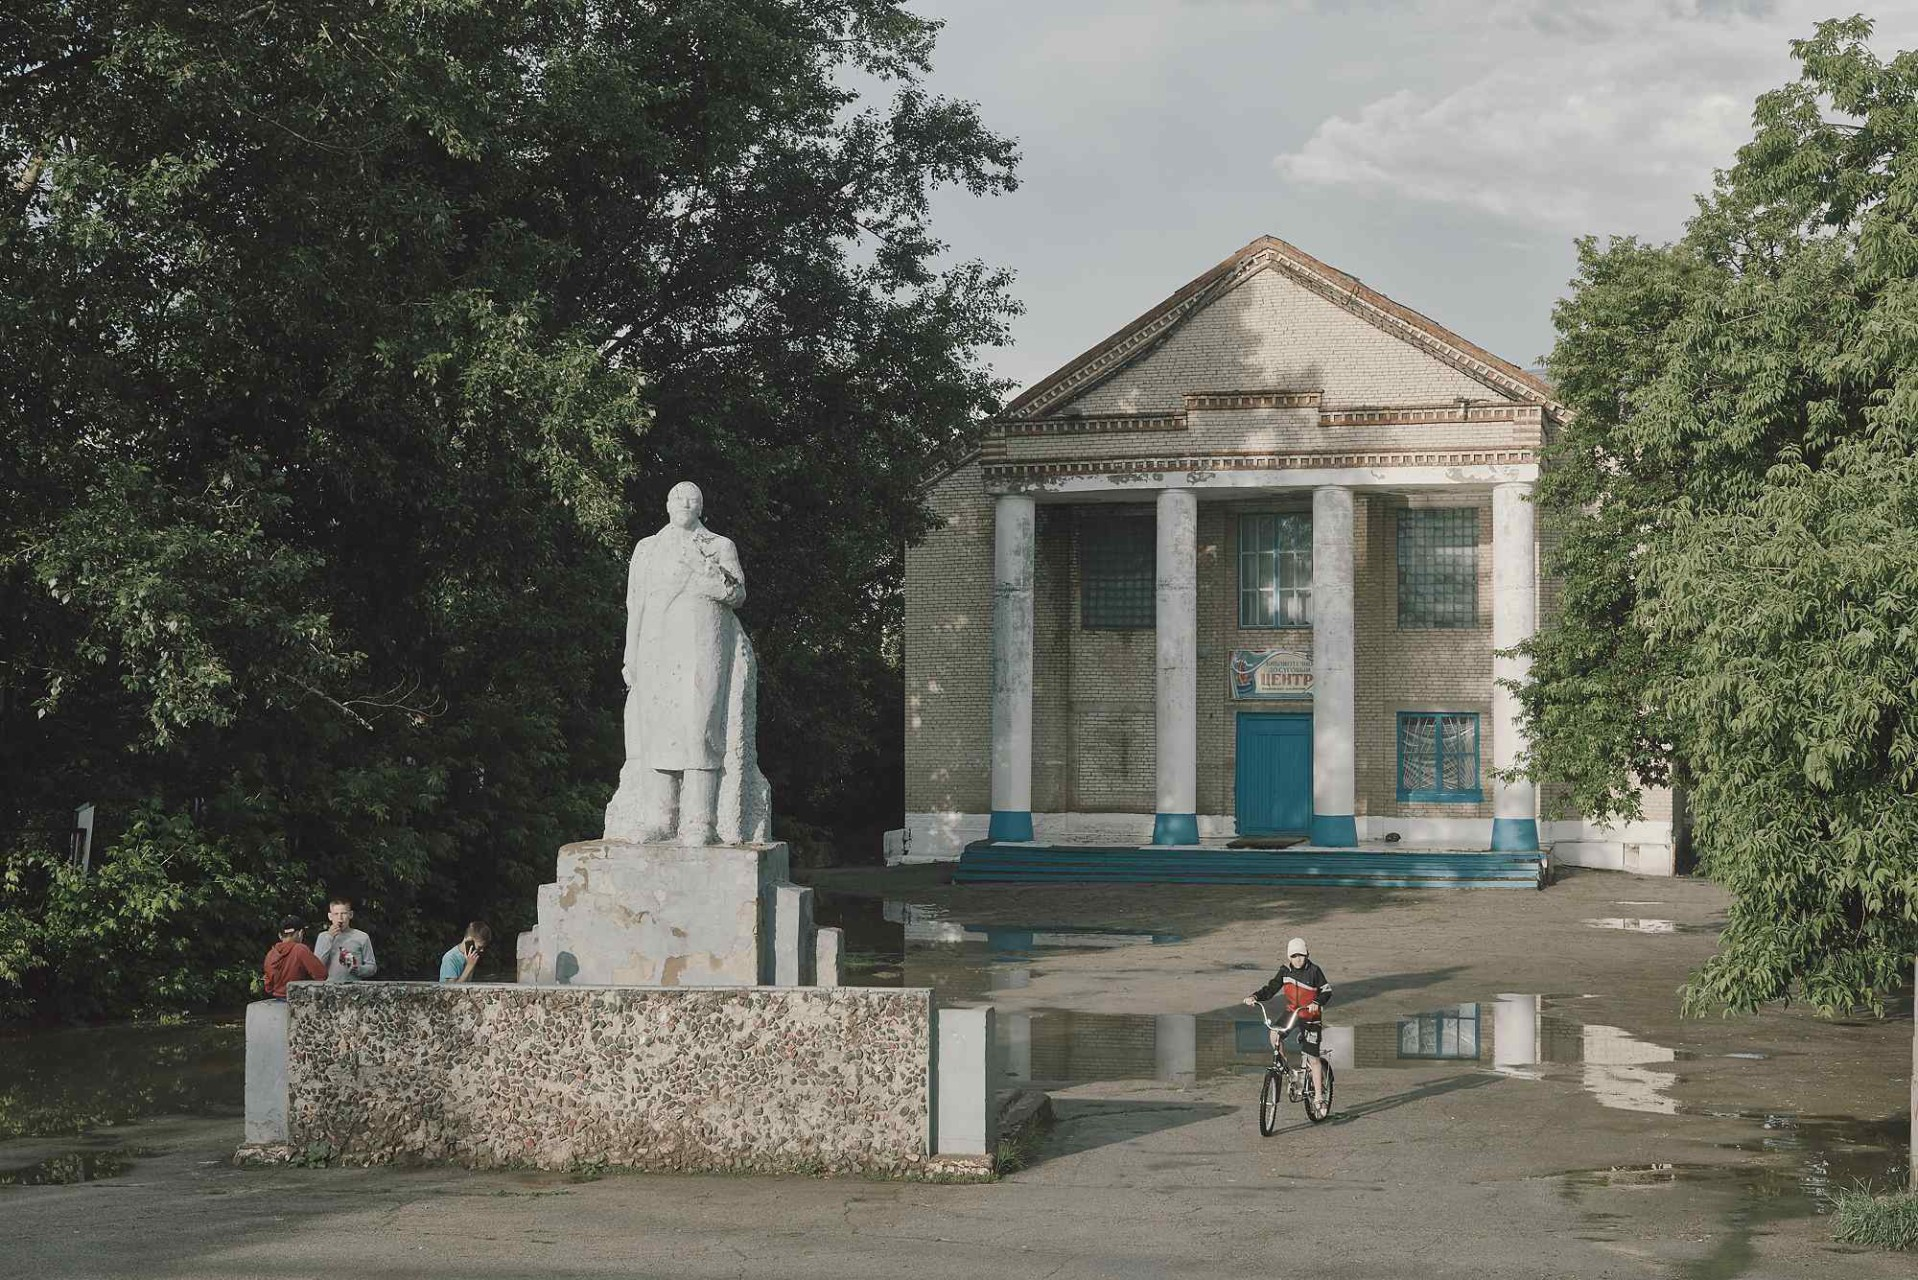 A Lenin Momument next to a library center in Izmail village, named in favor to the Siege of Izmail  (Turkey), 1790 on the Black Sea, during the Russo-Turkish war.